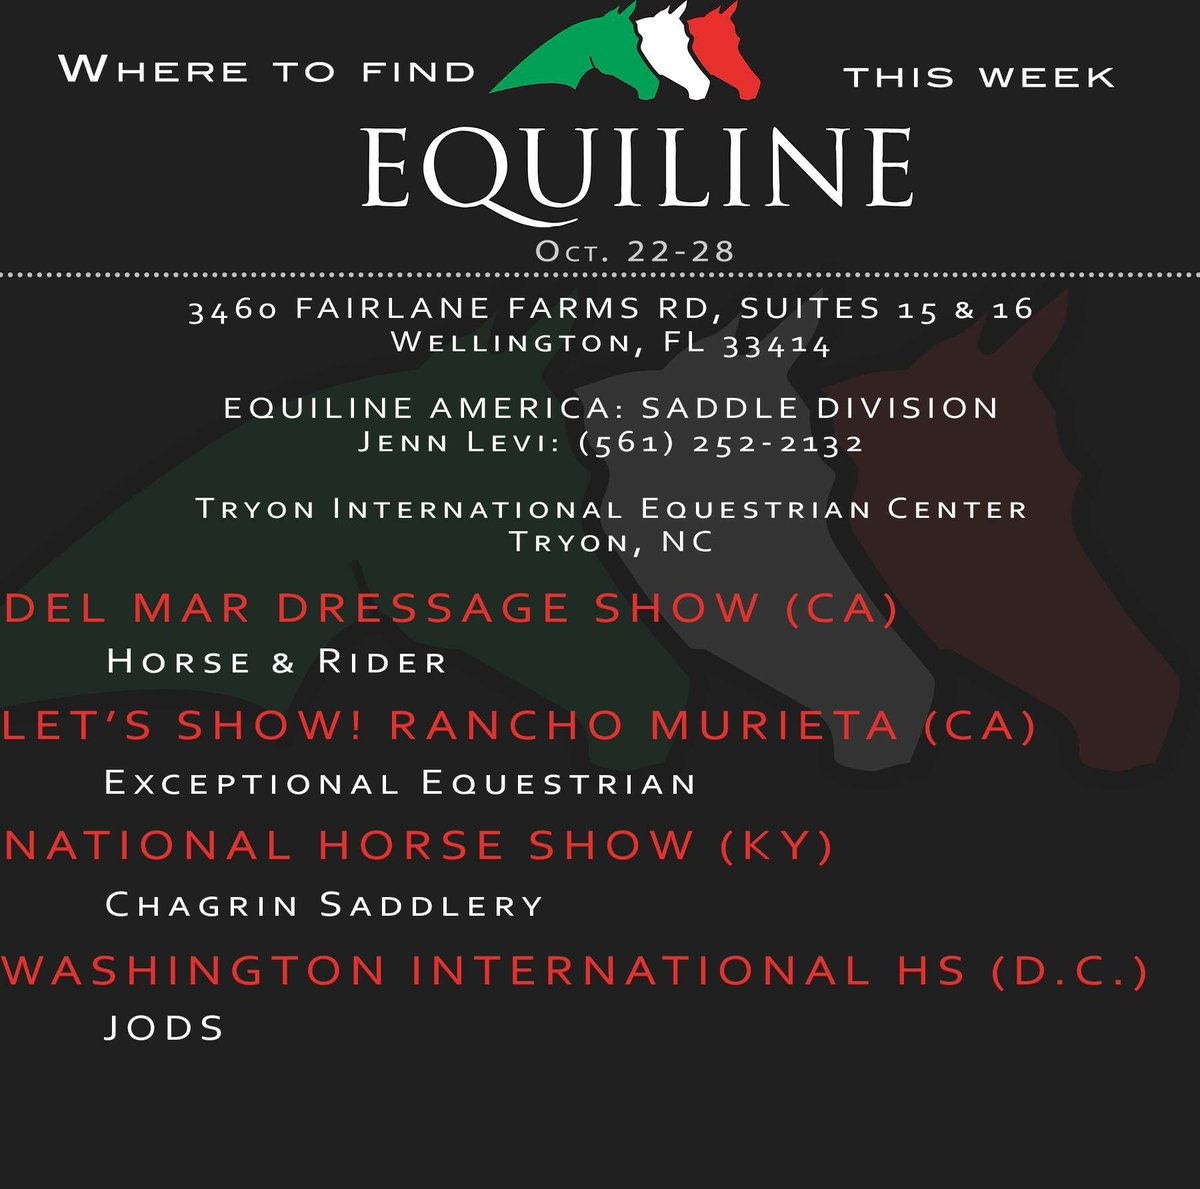 Equiline America on Twitter: